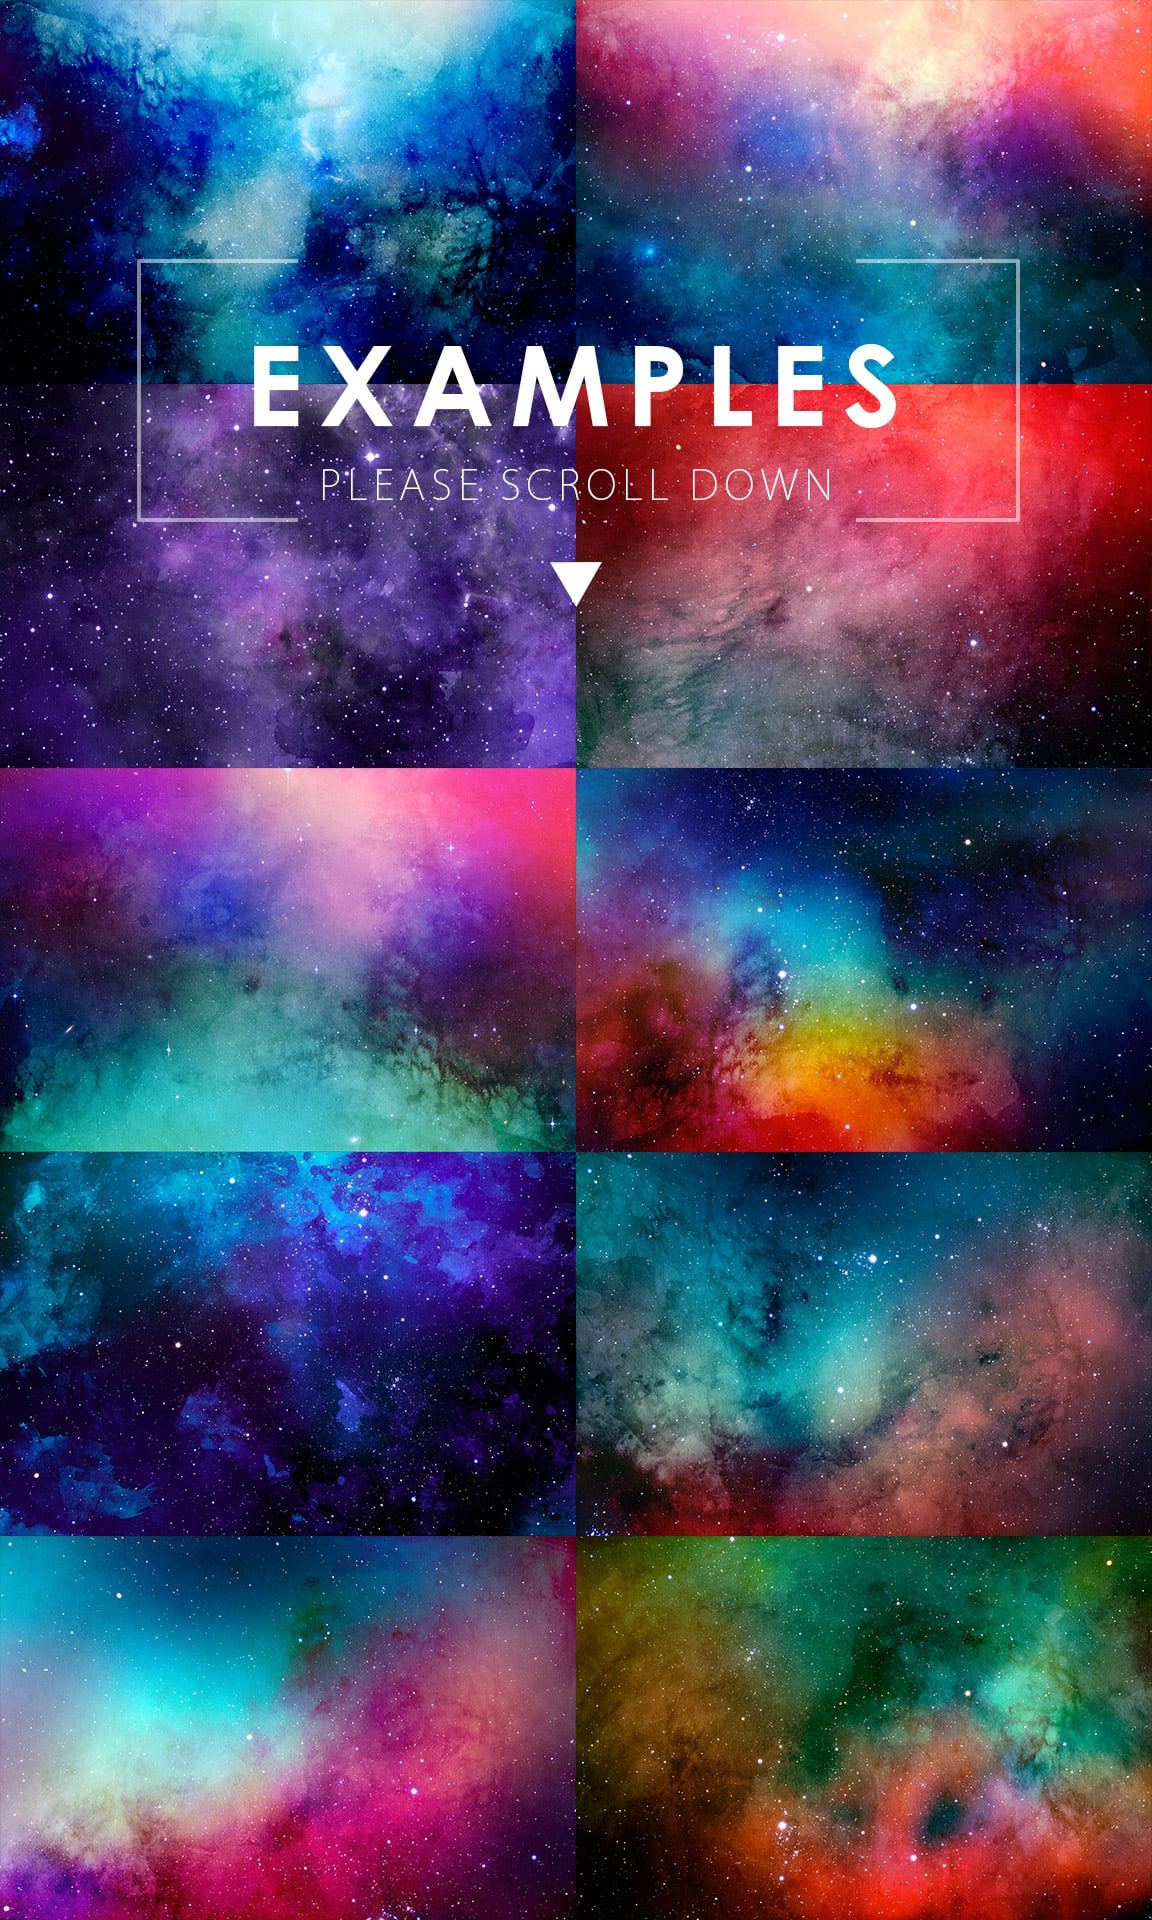 540+ Watercolor Backgrounds Bundle - 544 Items. Only $18! - space watercolor backgrounds prev3 o